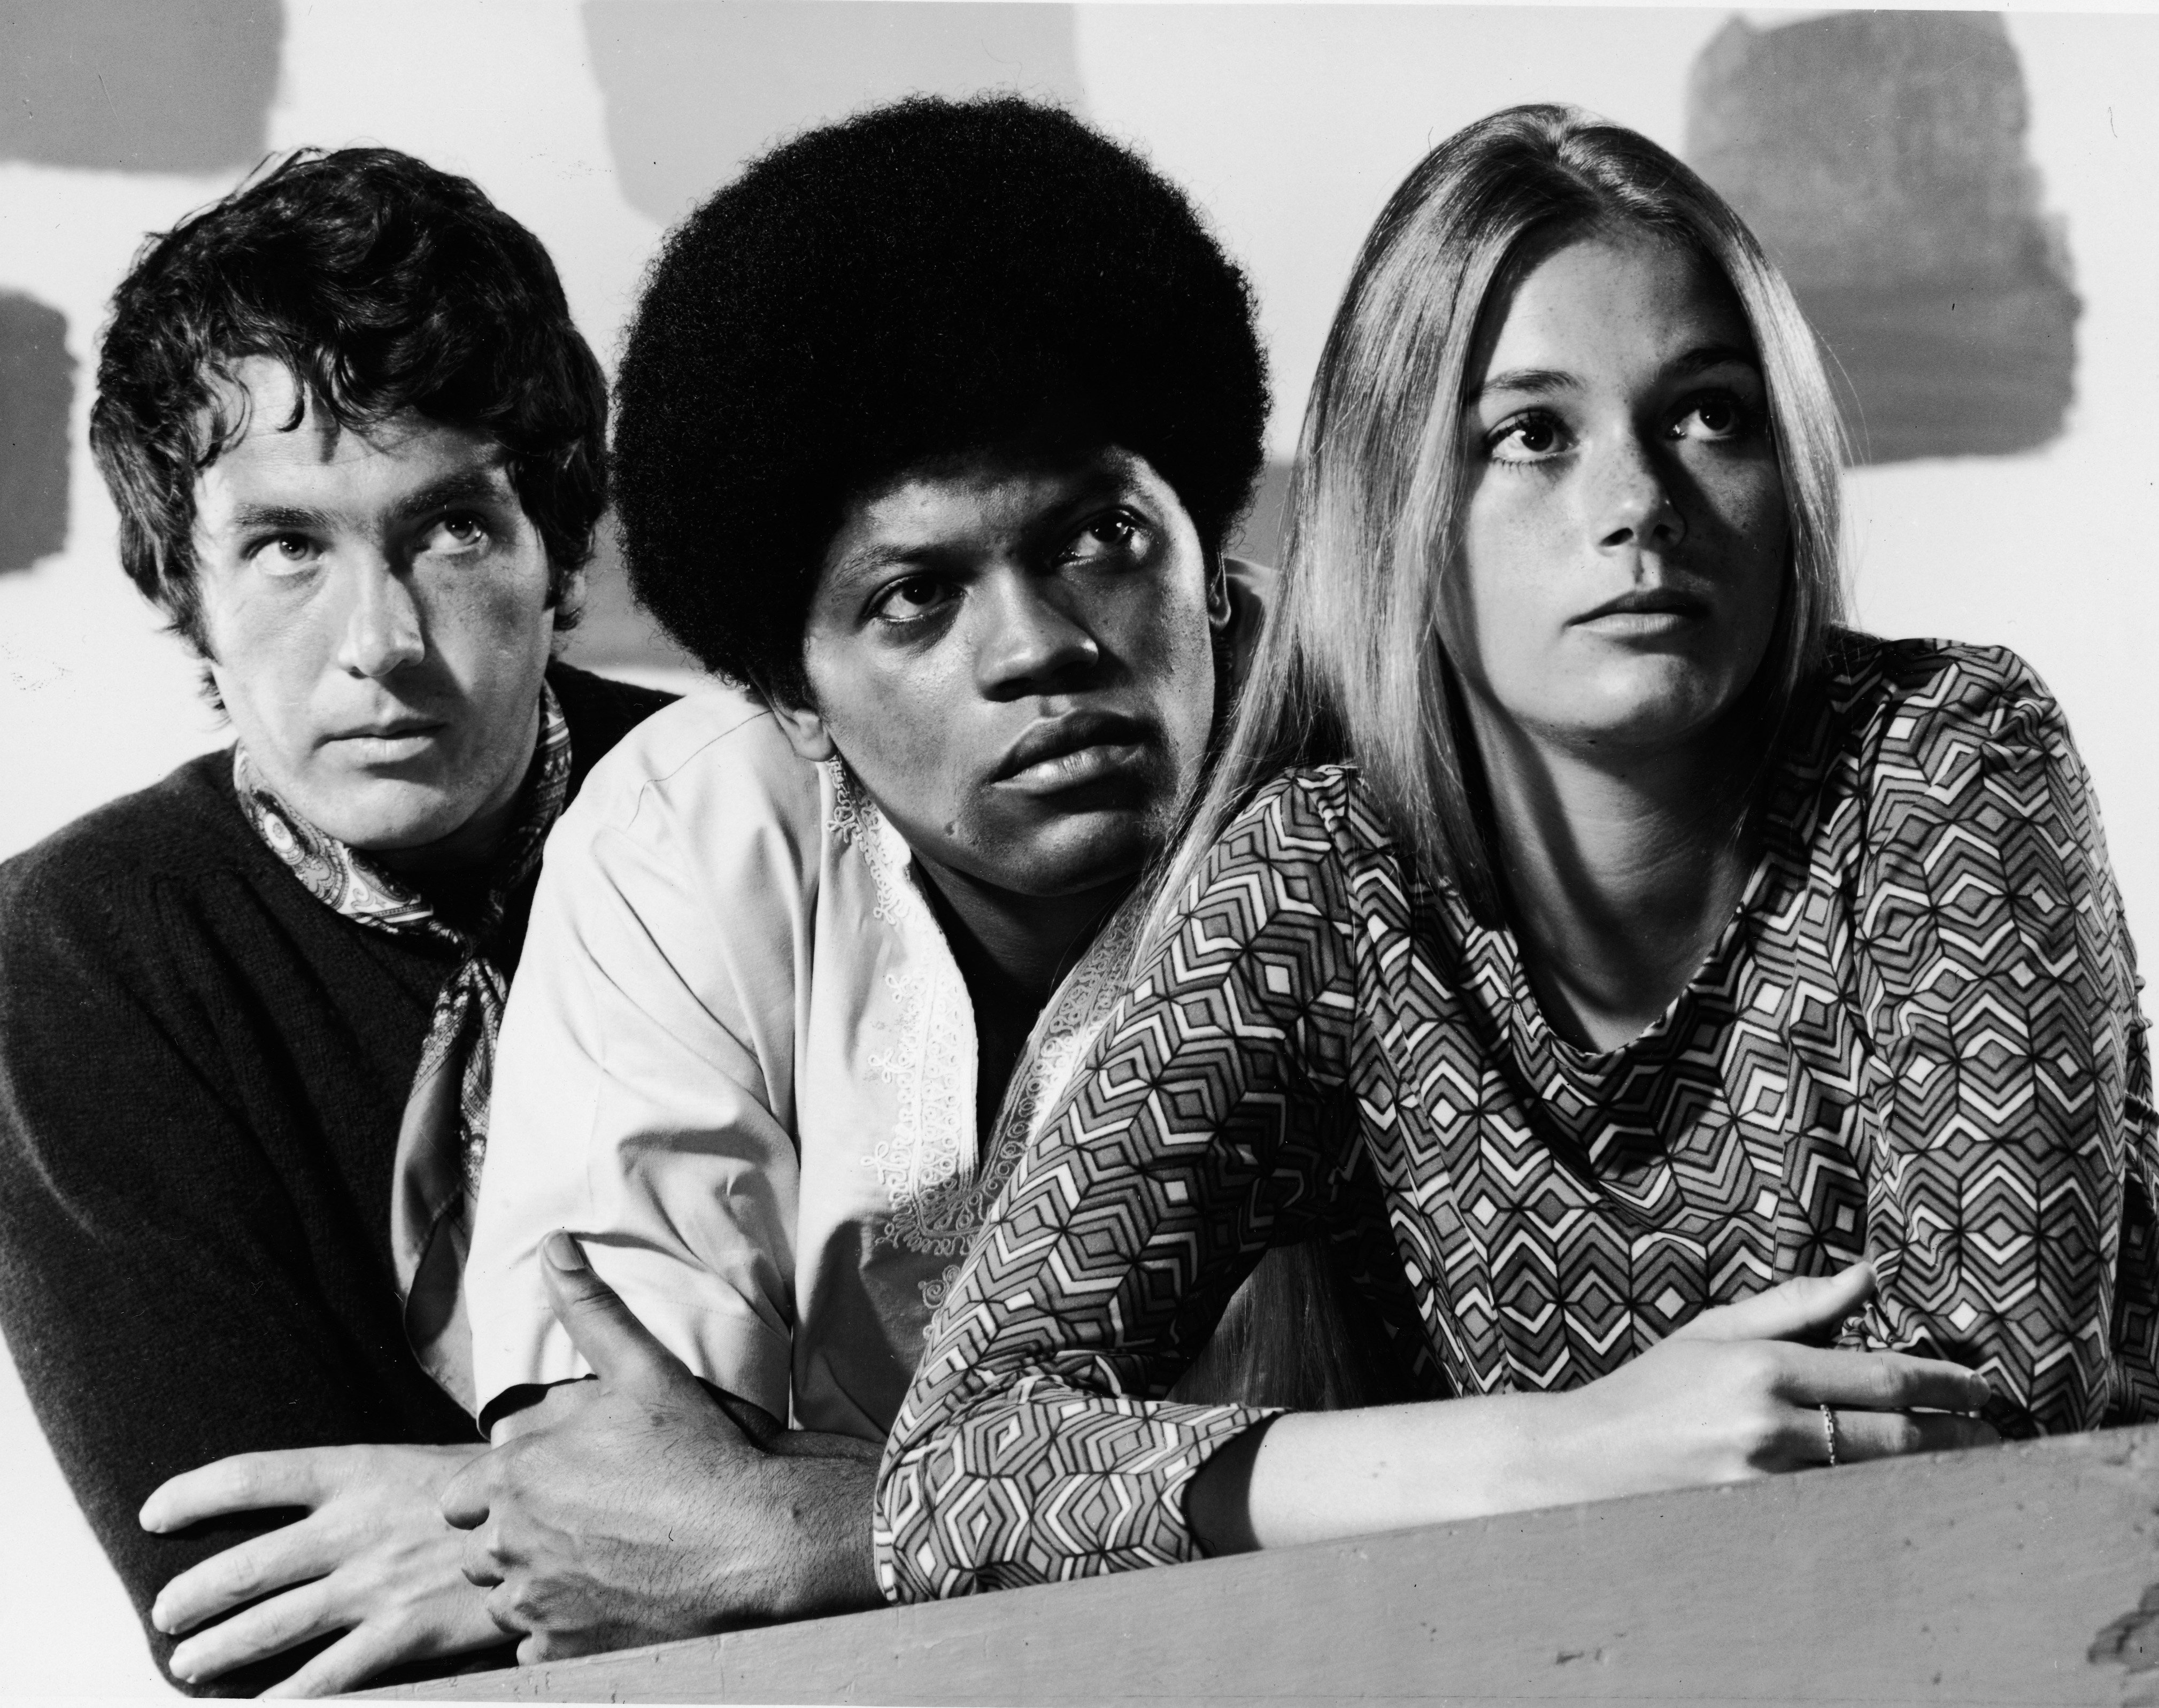 """Peggy Lipton posing with Michael Cole and Clarence Williams III for the show """"The Mod Squad"""" in 1968. 